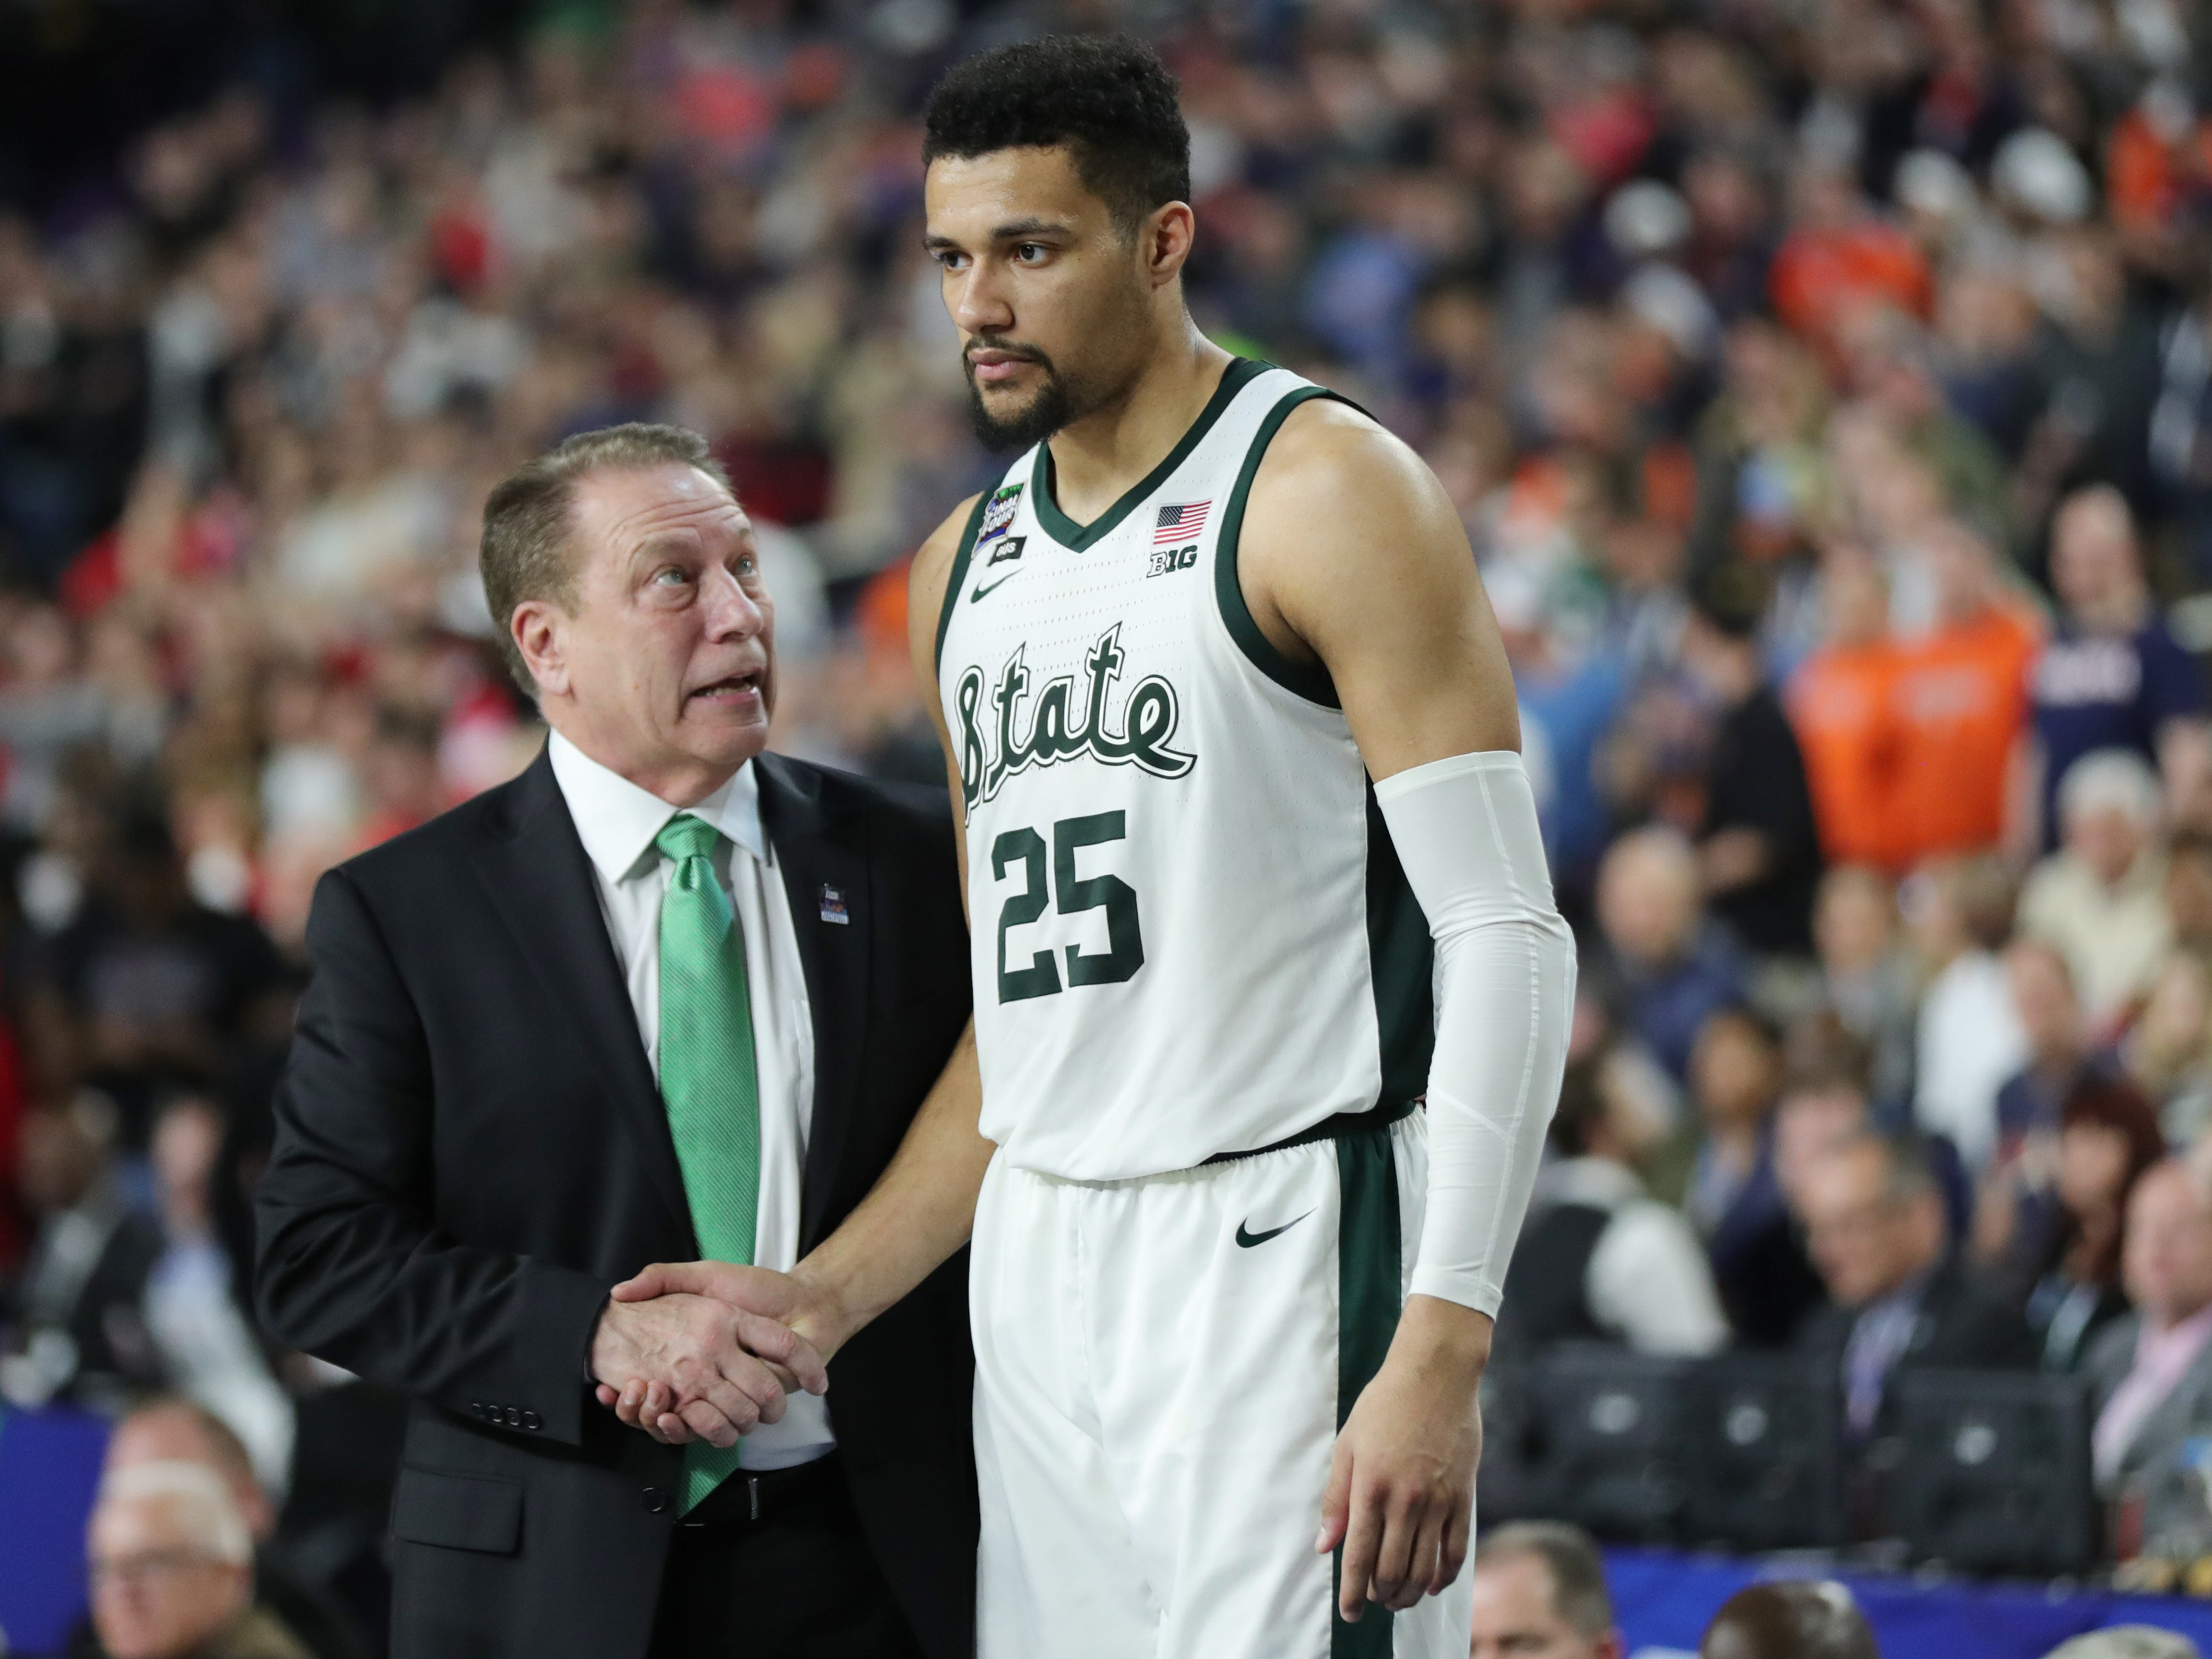 Michigan State head coach Tom Izzo looks up at forward Kenny Goins during the final seconds of the Final Four loss to Texas Tech, 61-51, at U.S. Bank Stadium in Minneapolis, Minnesota on Saturday, April 6, 2019.